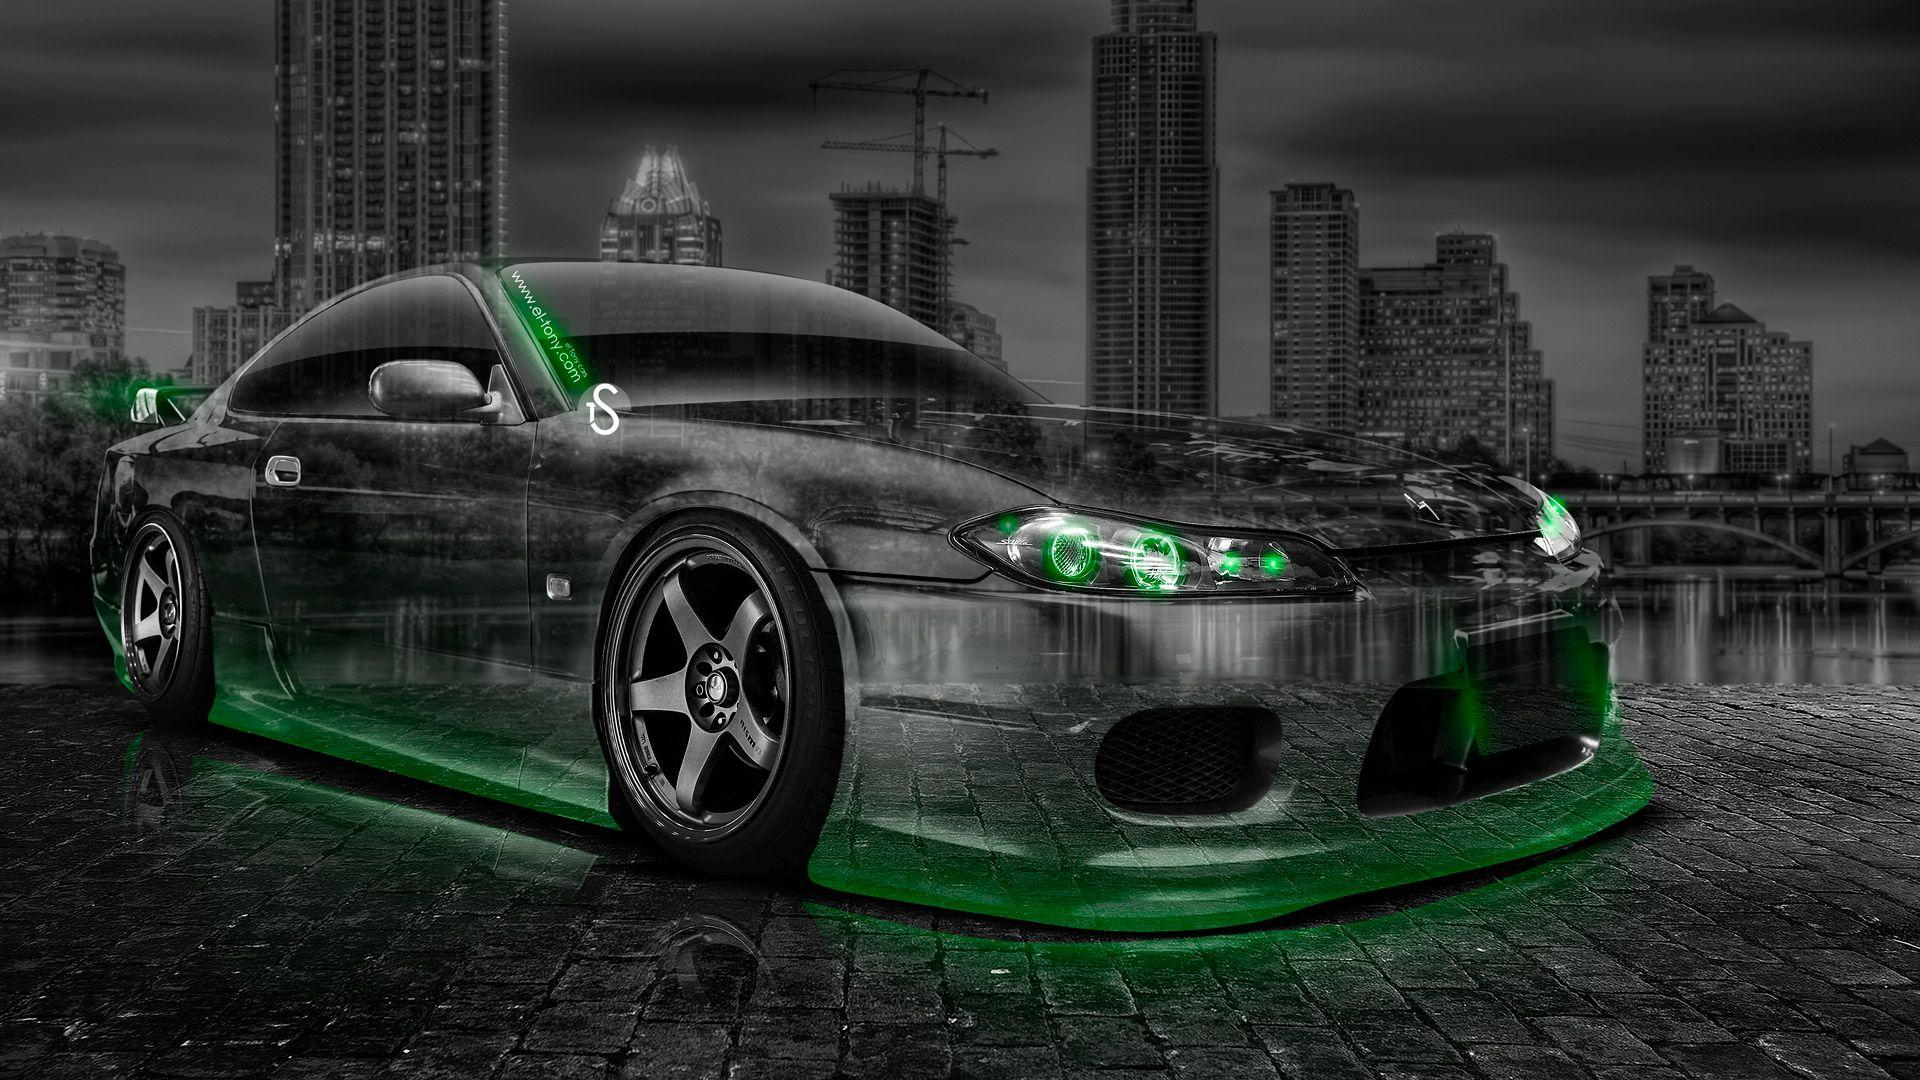 Incroyable Nissan Silvia S15 JDM Crystal City Car 2014 | El Tony